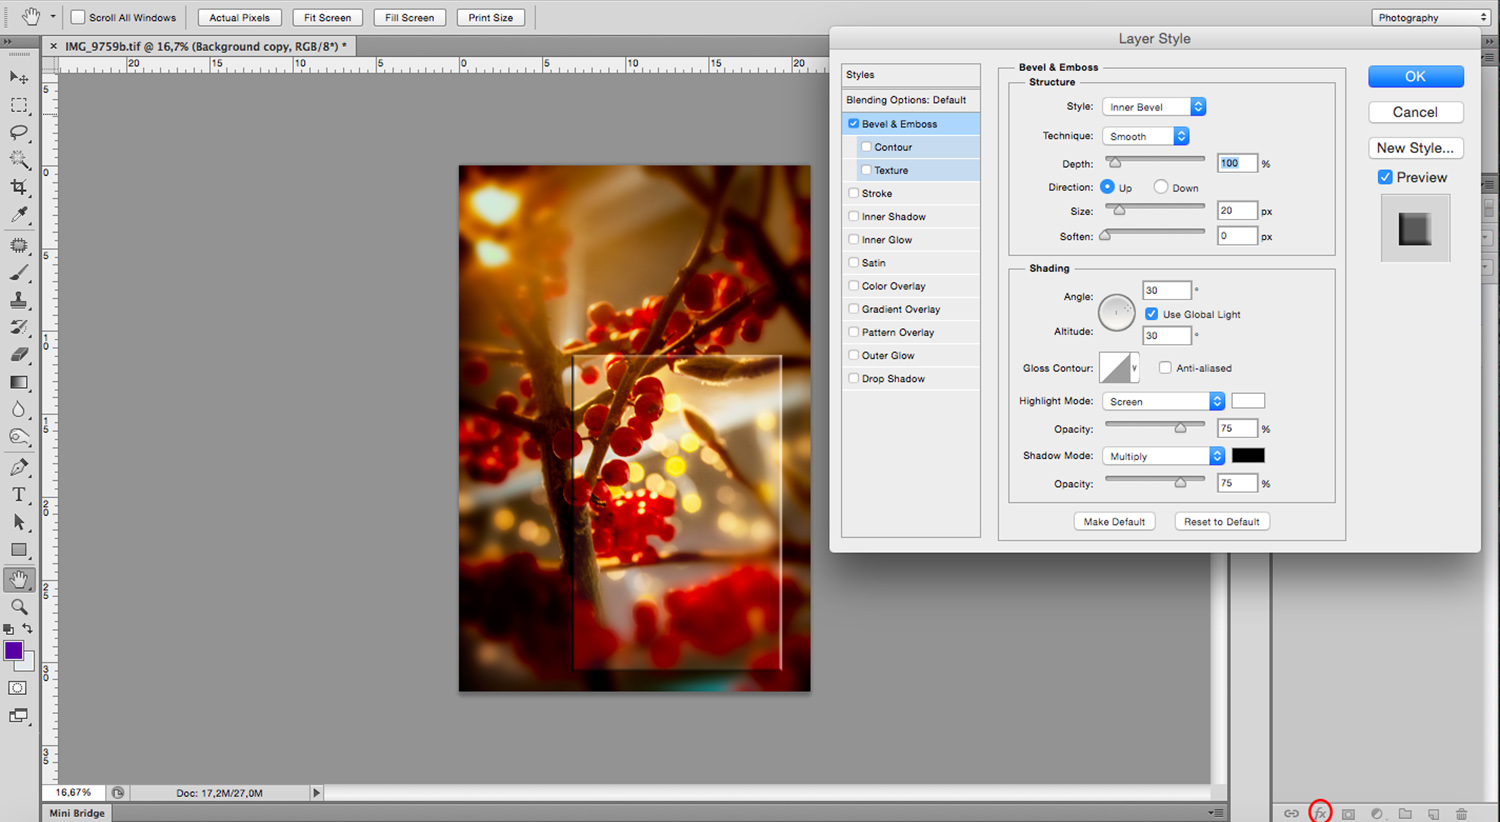 6- How to Make Great Photo Invitations in Photoshop